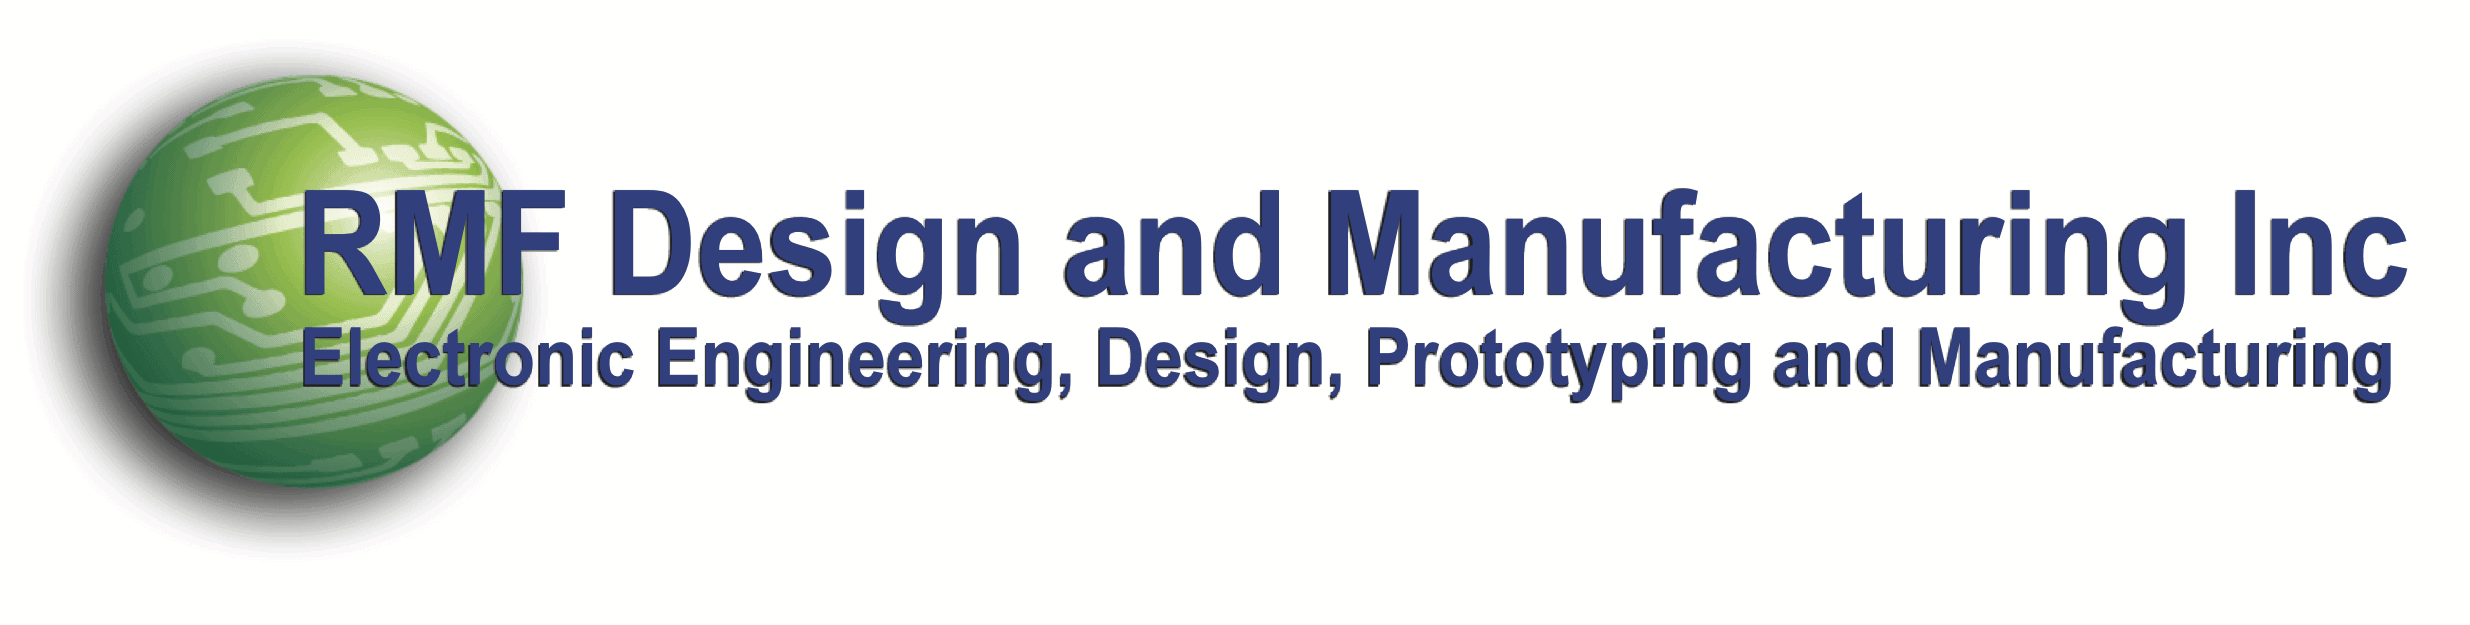 RMF Design and Manufacturing Inc.